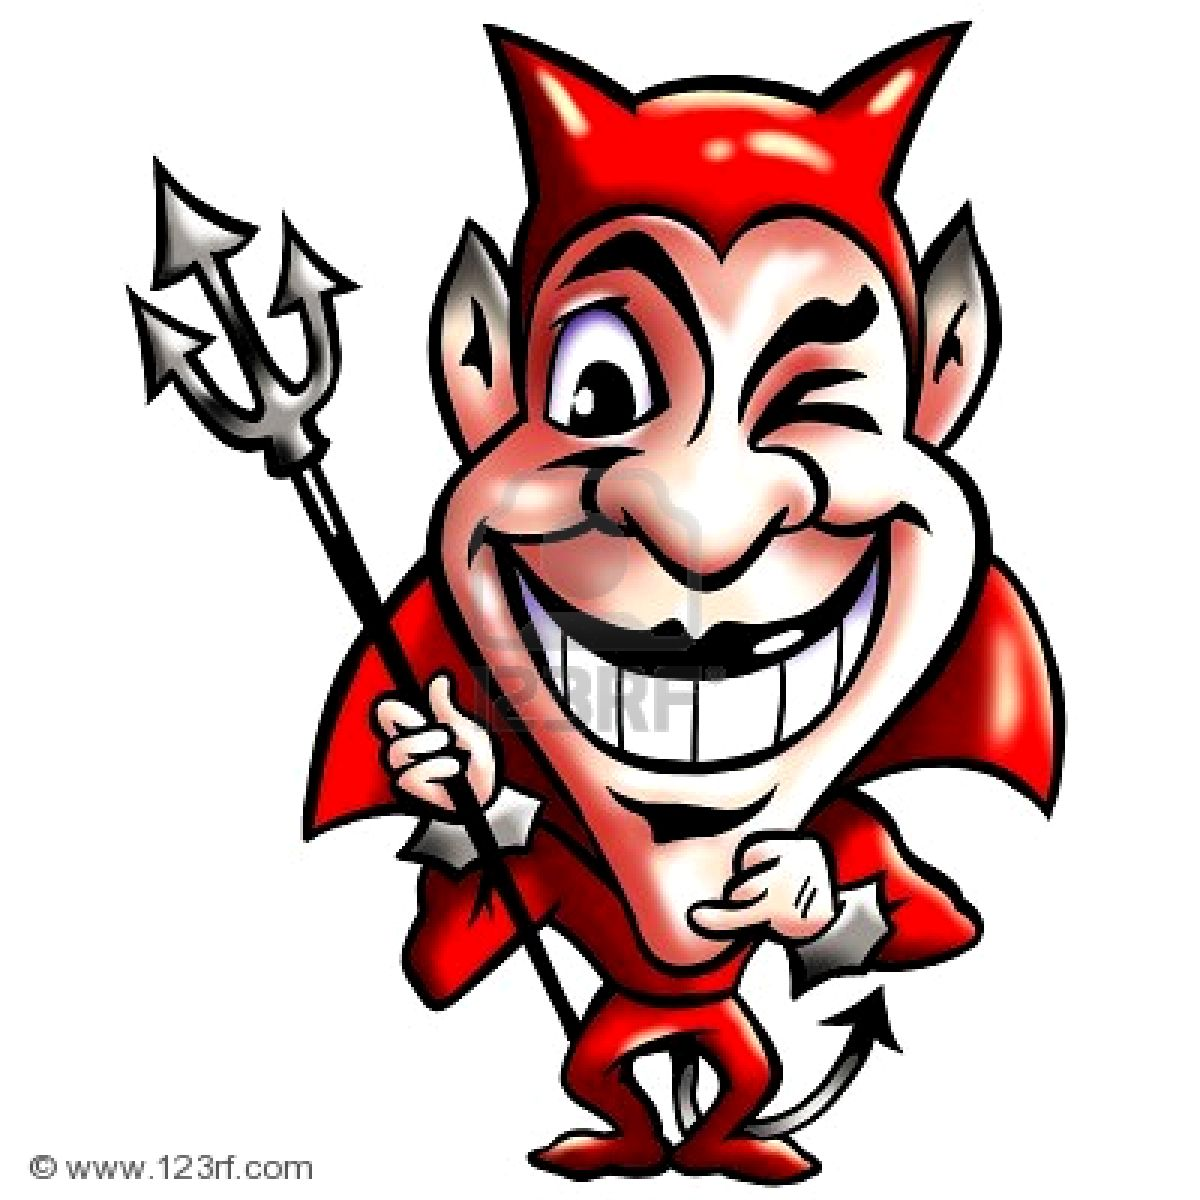 http://www.crestwood.sparcc.org/userfiles/647/5237368-cunning-smiling-red-devil.jpg